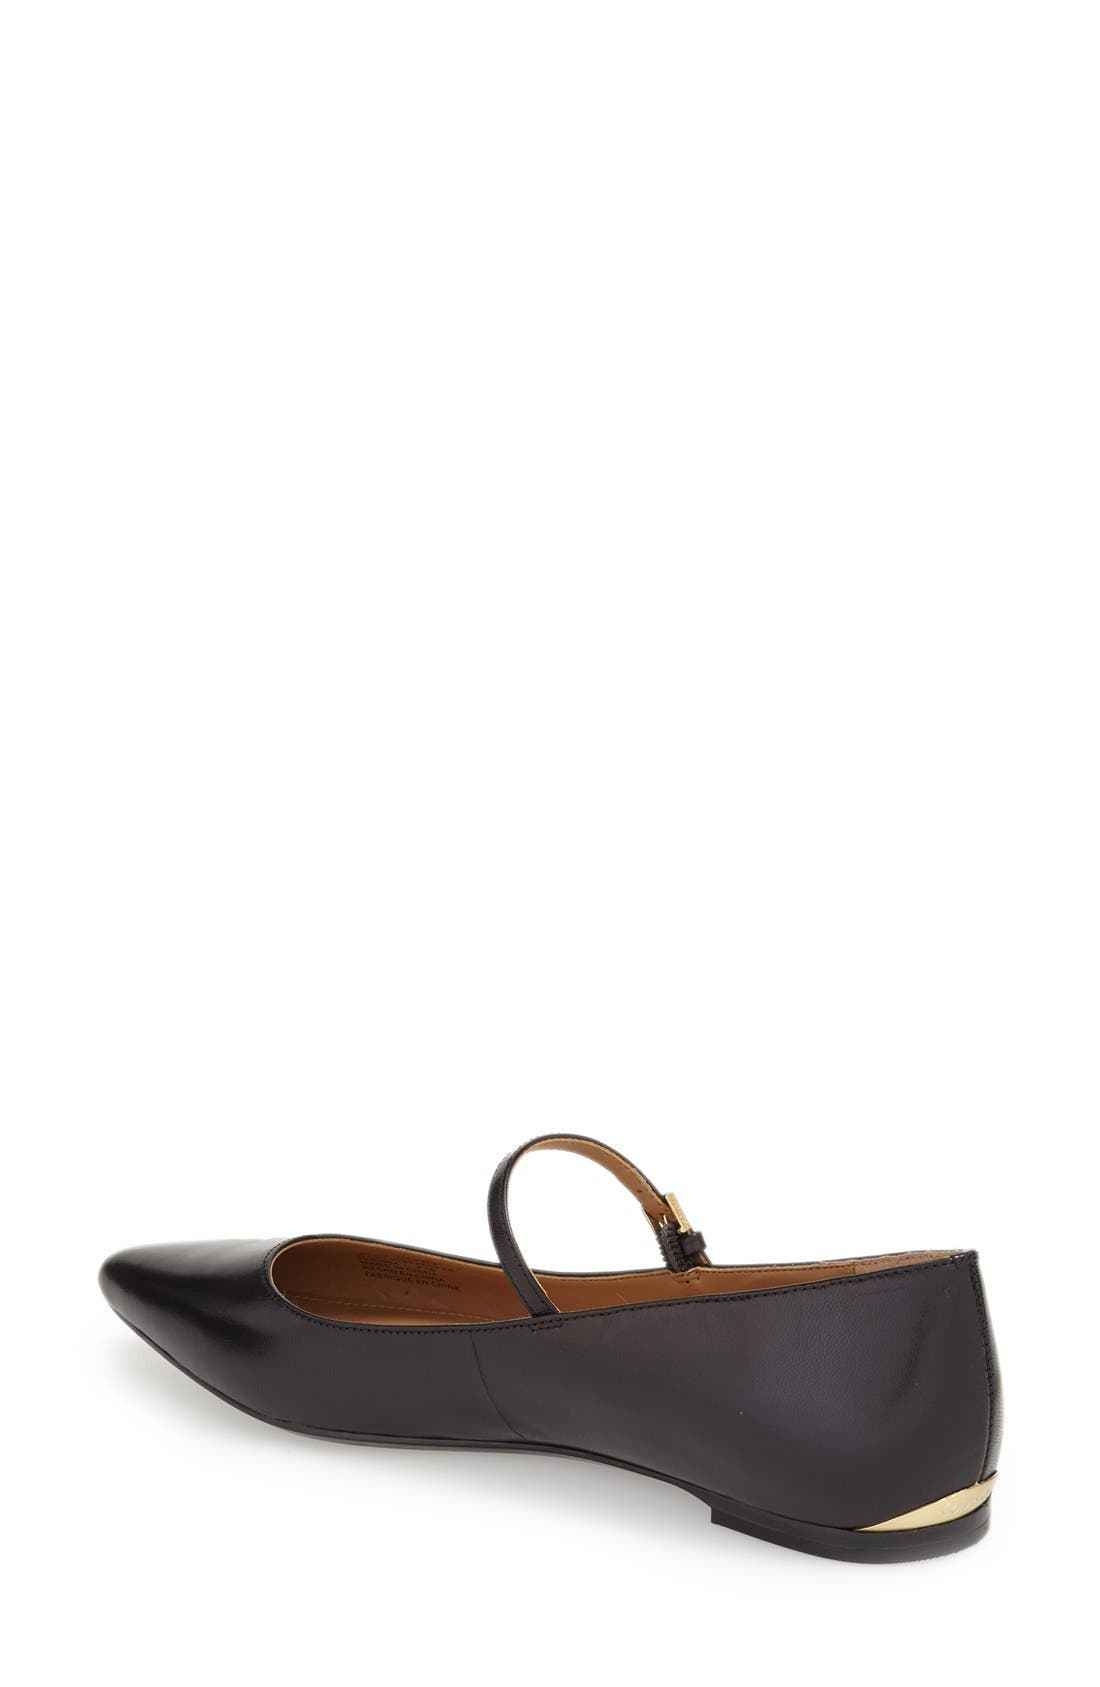 Alternate Image 2  - Calvin Klein 'Gracy' Mary Jane Flat (Women)